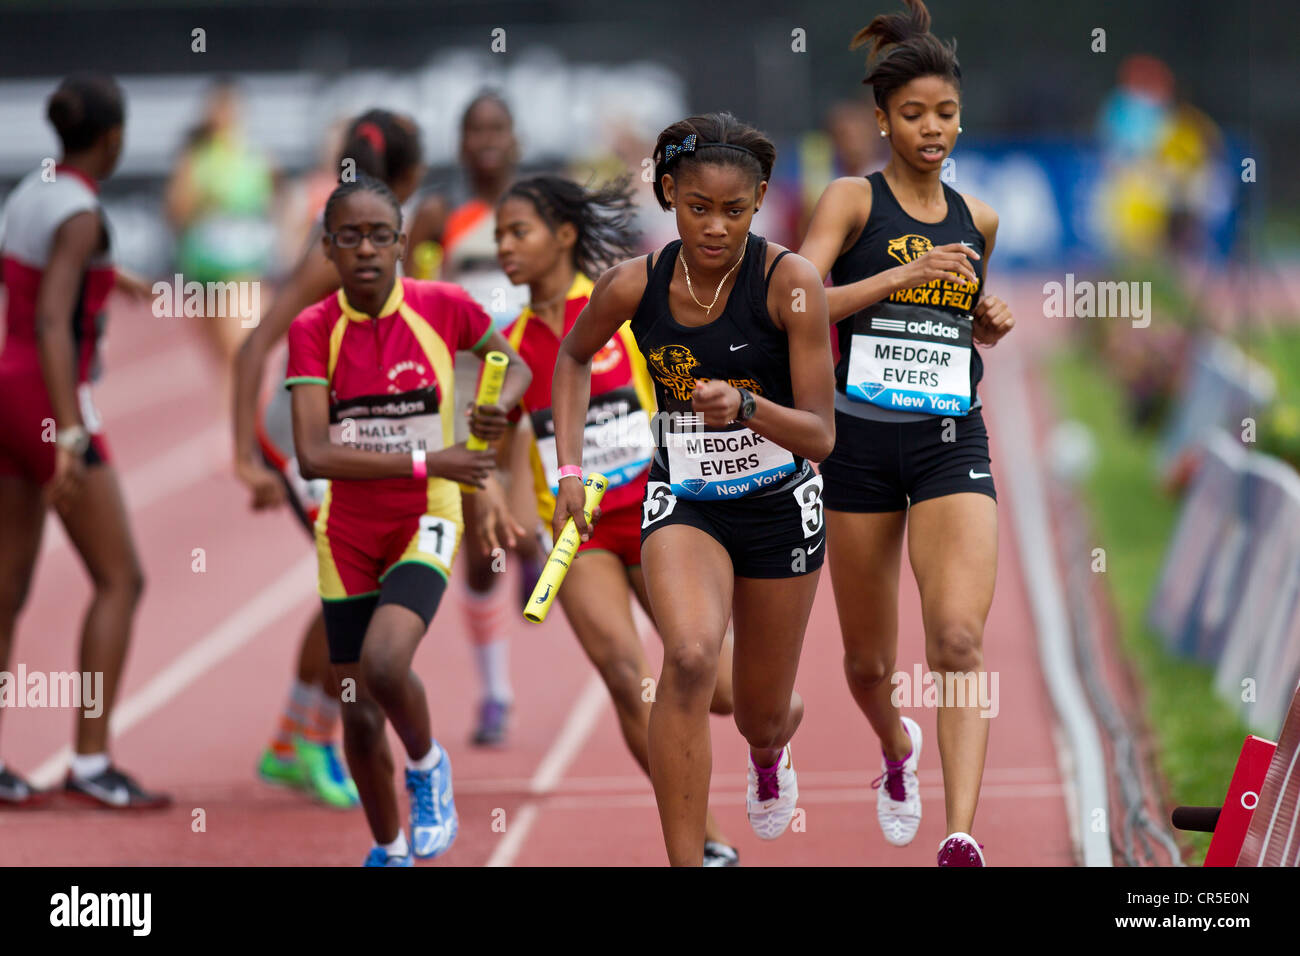 Medgar Evers prep competing in the Youth Girls' 4x400m Relay at the 2012 NYC Grand Prix - Stock Image